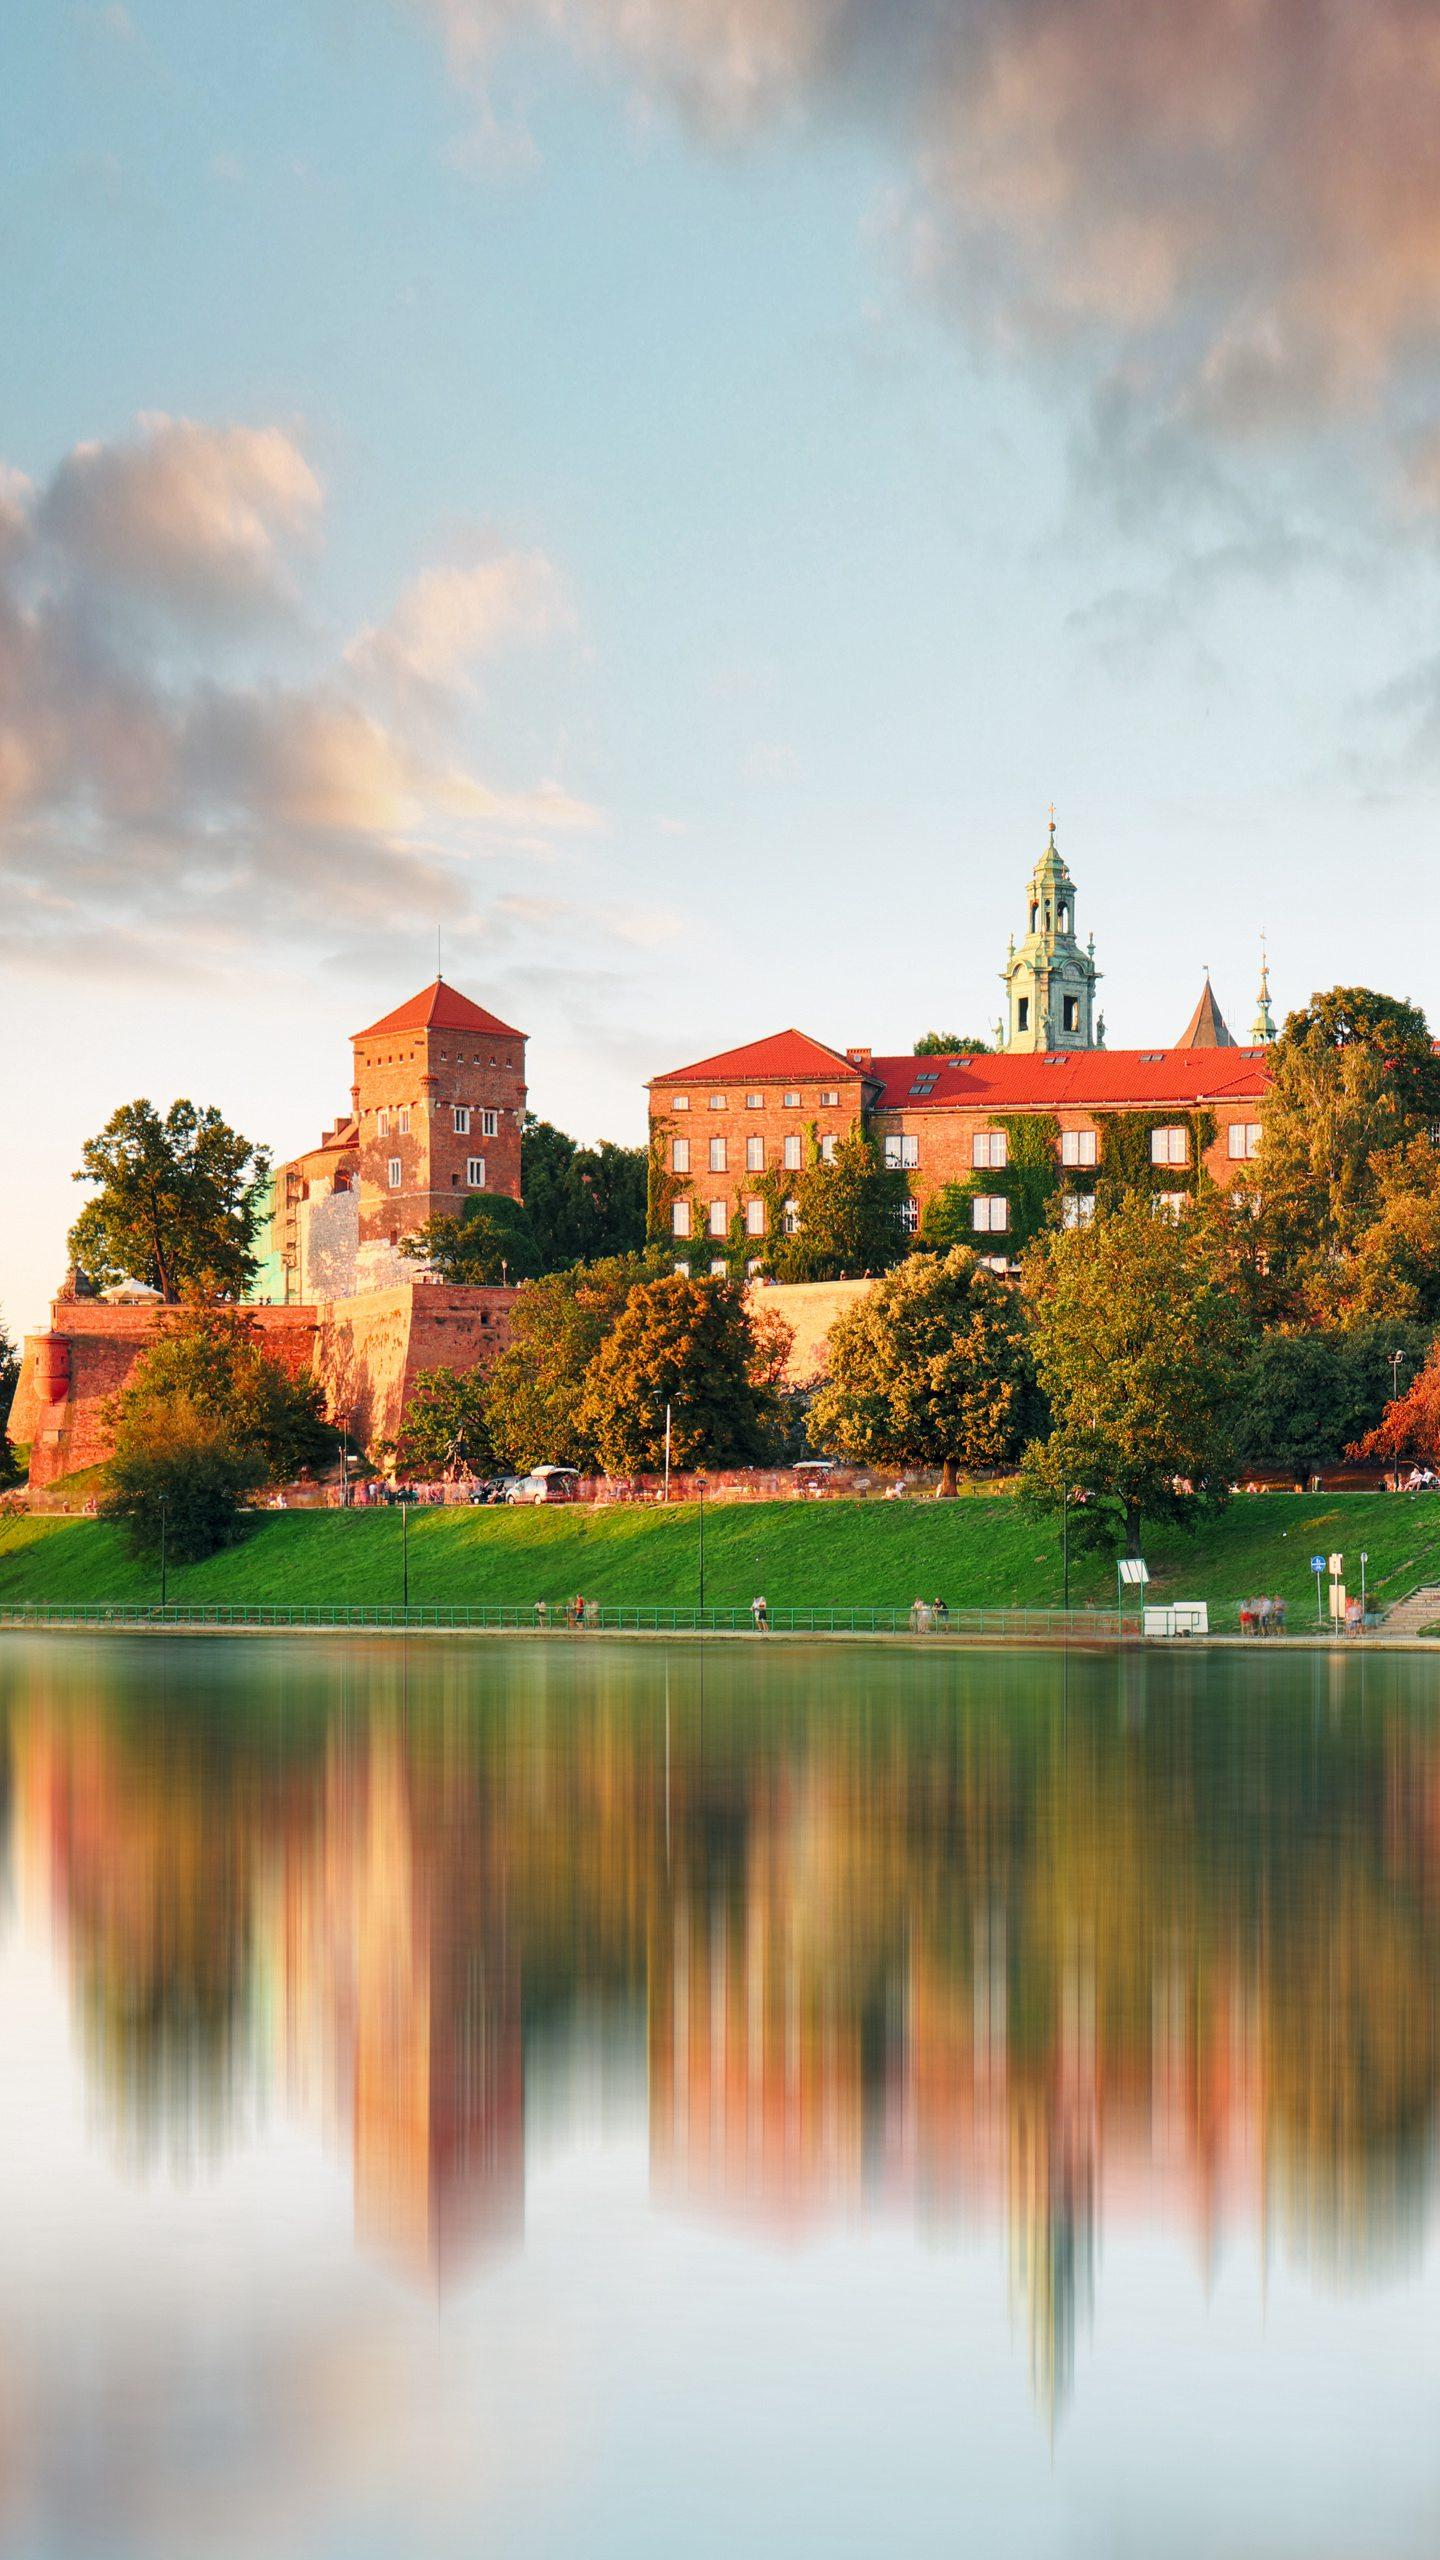 Poland - Wawel Castle has long been the residence of the Polish royal family and is one of the national symbols of Poland.